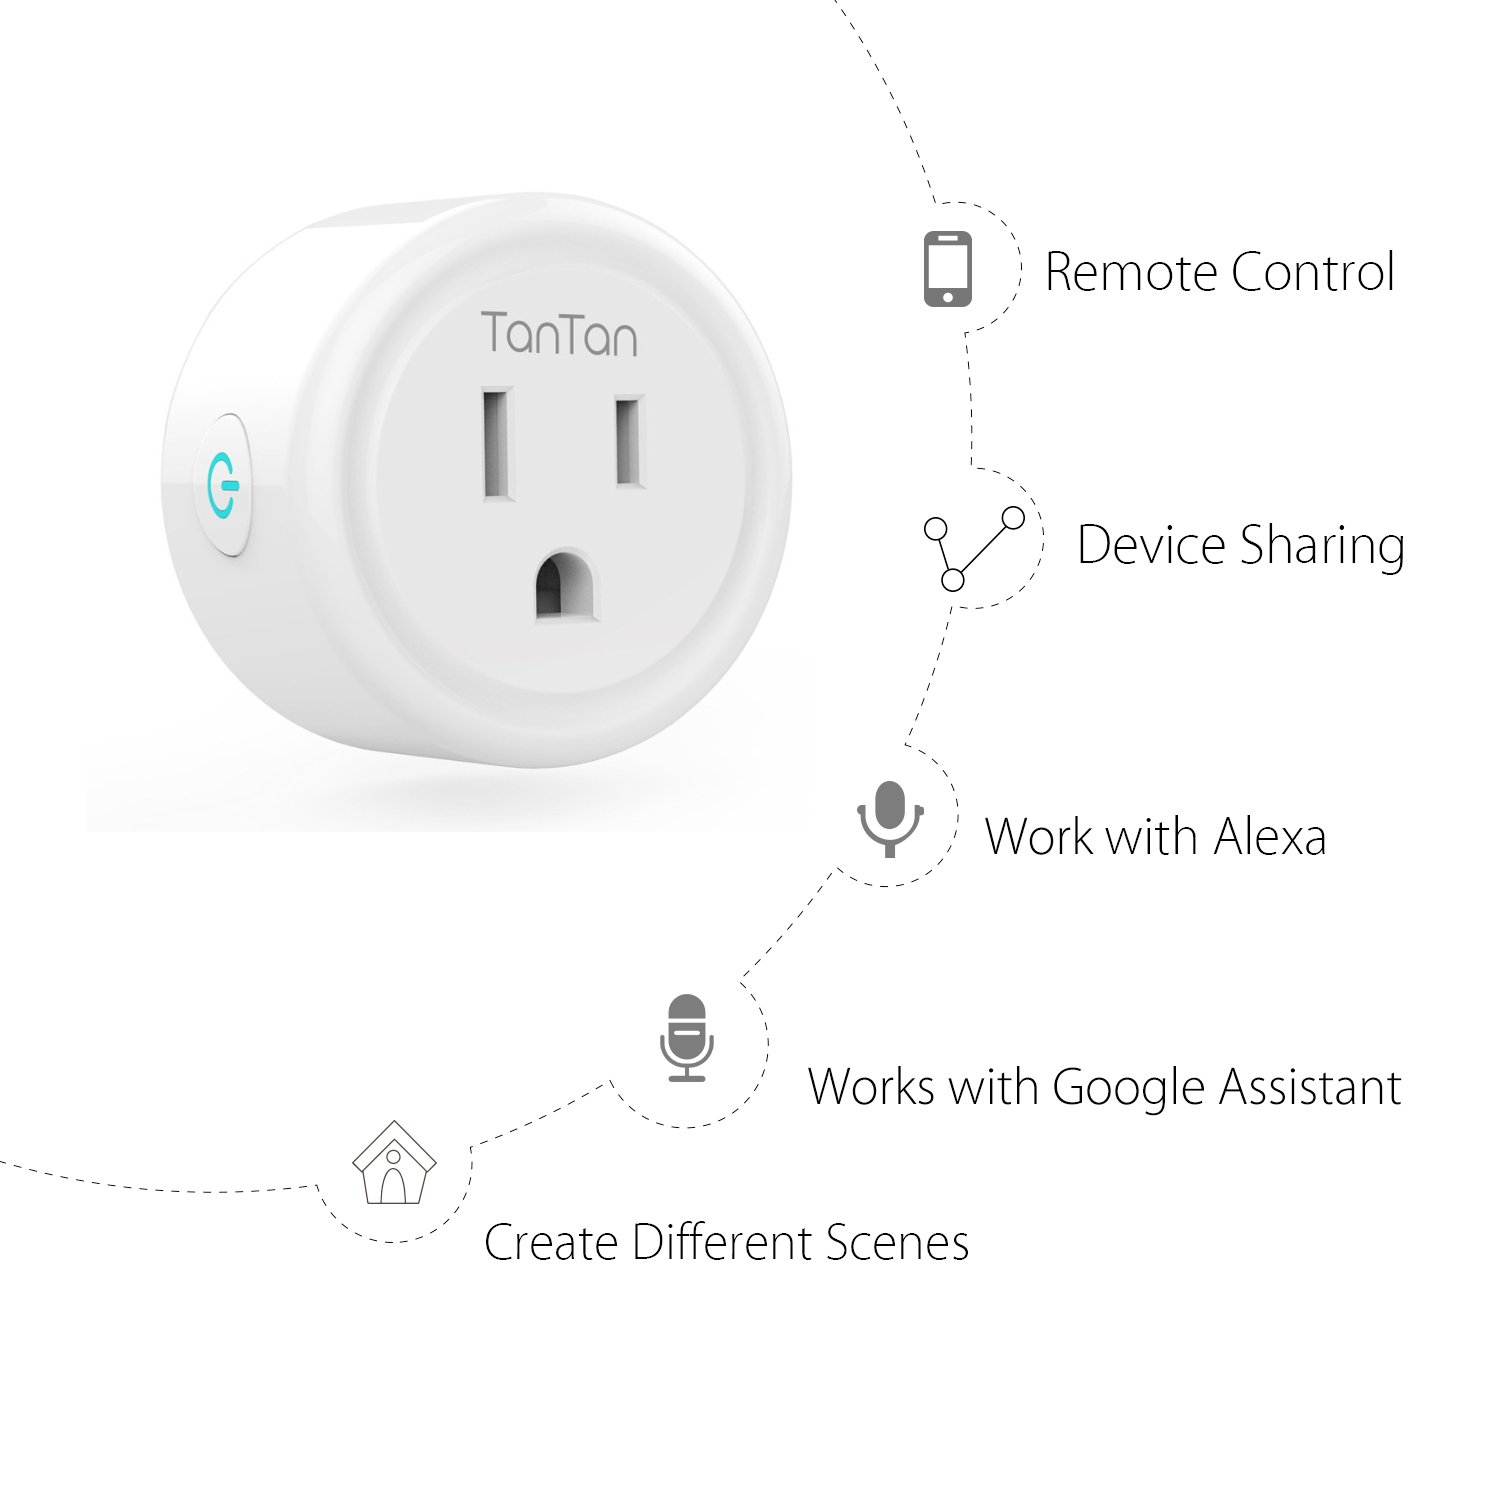 Smart Plug 2 Pack, TanTan WiFi Enabled Mini Smart Switch, Work with Amazon Alexa & Google Assistant, No Hub Required, Remote Control Your Devices from Anywhere, ETL Listed [Upgraded Version] by TanTan (Image #2)